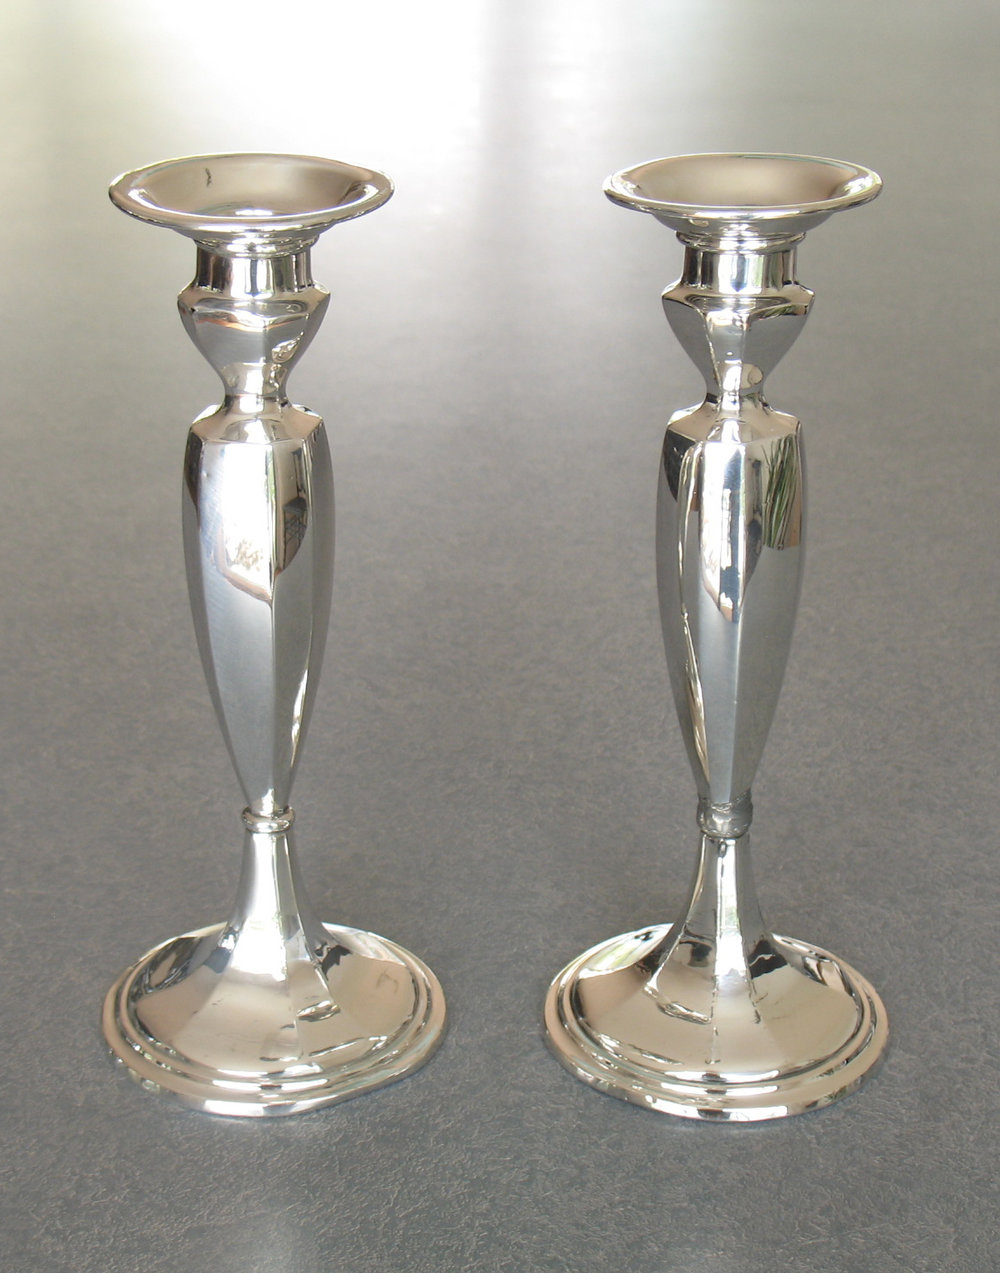 Sterling silver candlestick were crooked and now straightened.